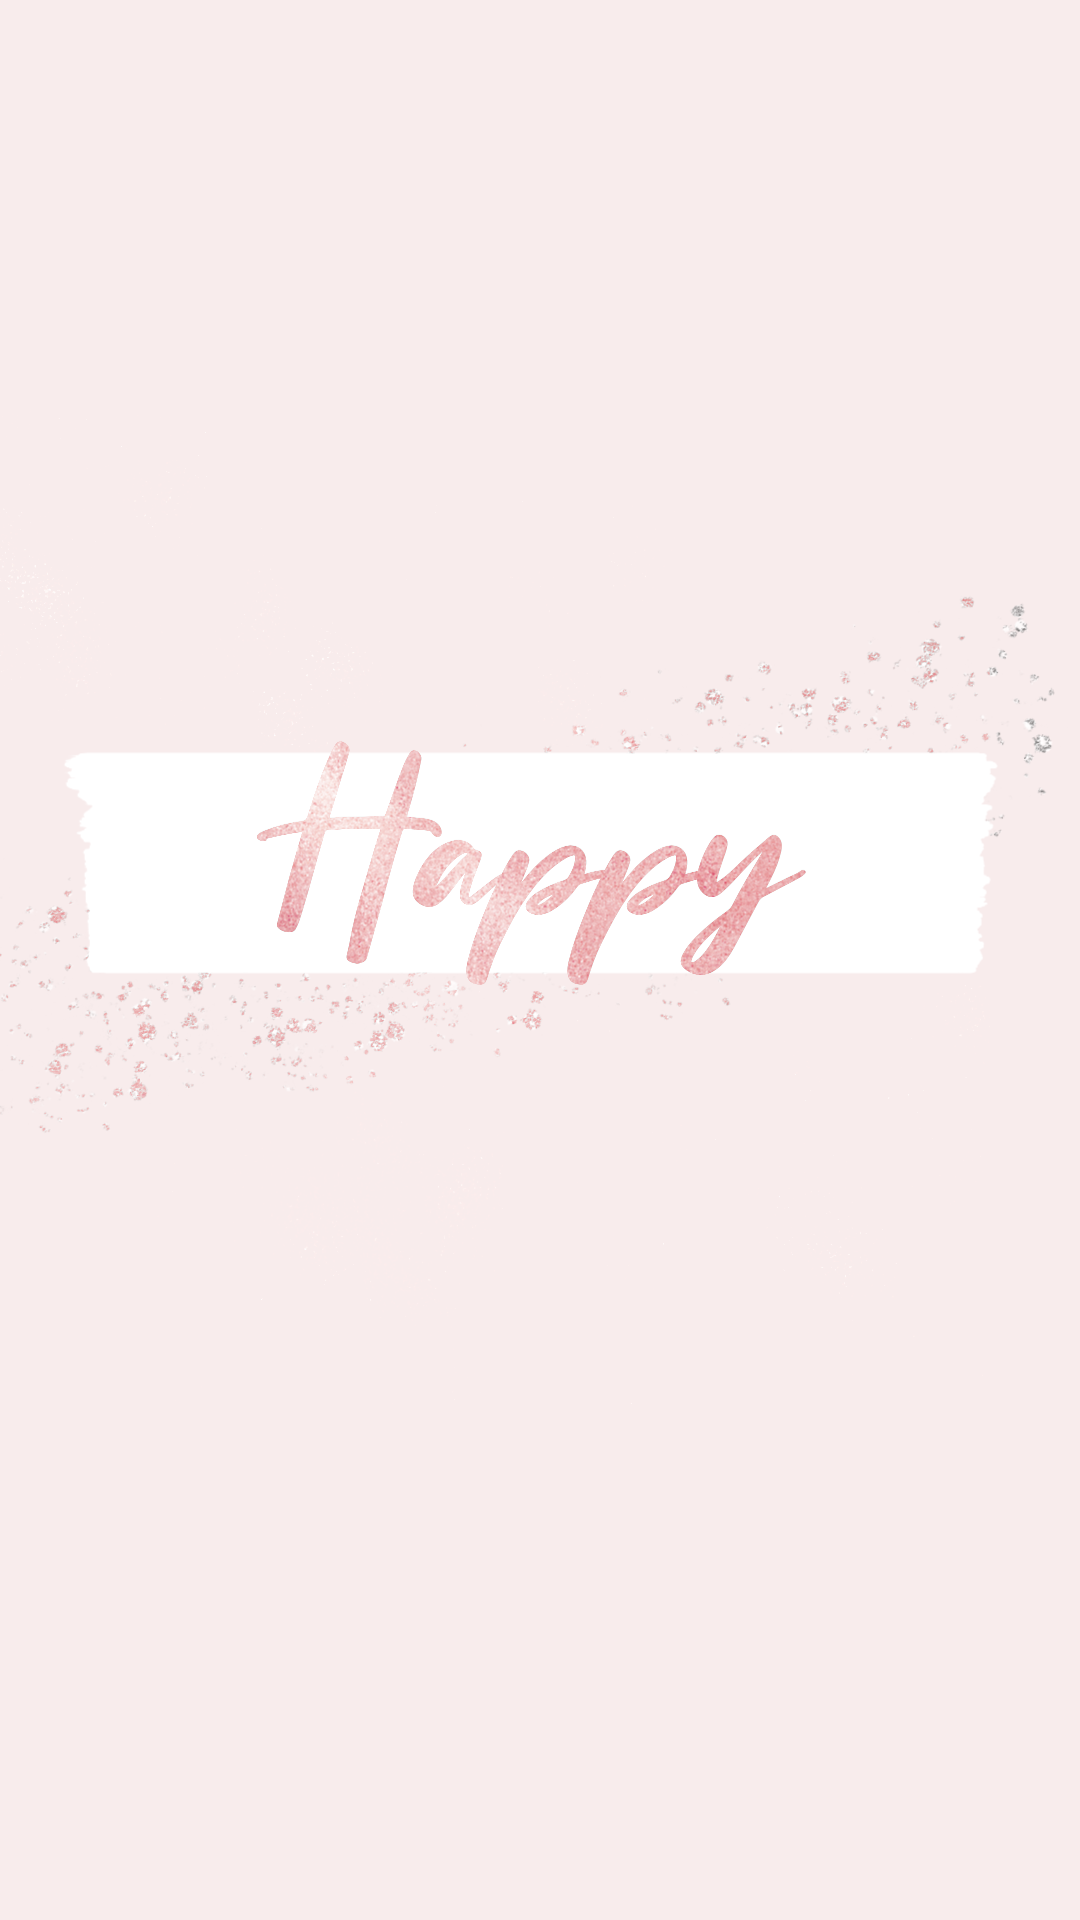 Pink Wallpaper Iphone Wallpaper Phone Wallpaper Free Pink Wallpaper Free Iphone Wallpaper Motivational Wal Latar Belakang Fotografi Abstrak Wallpaper Lucu